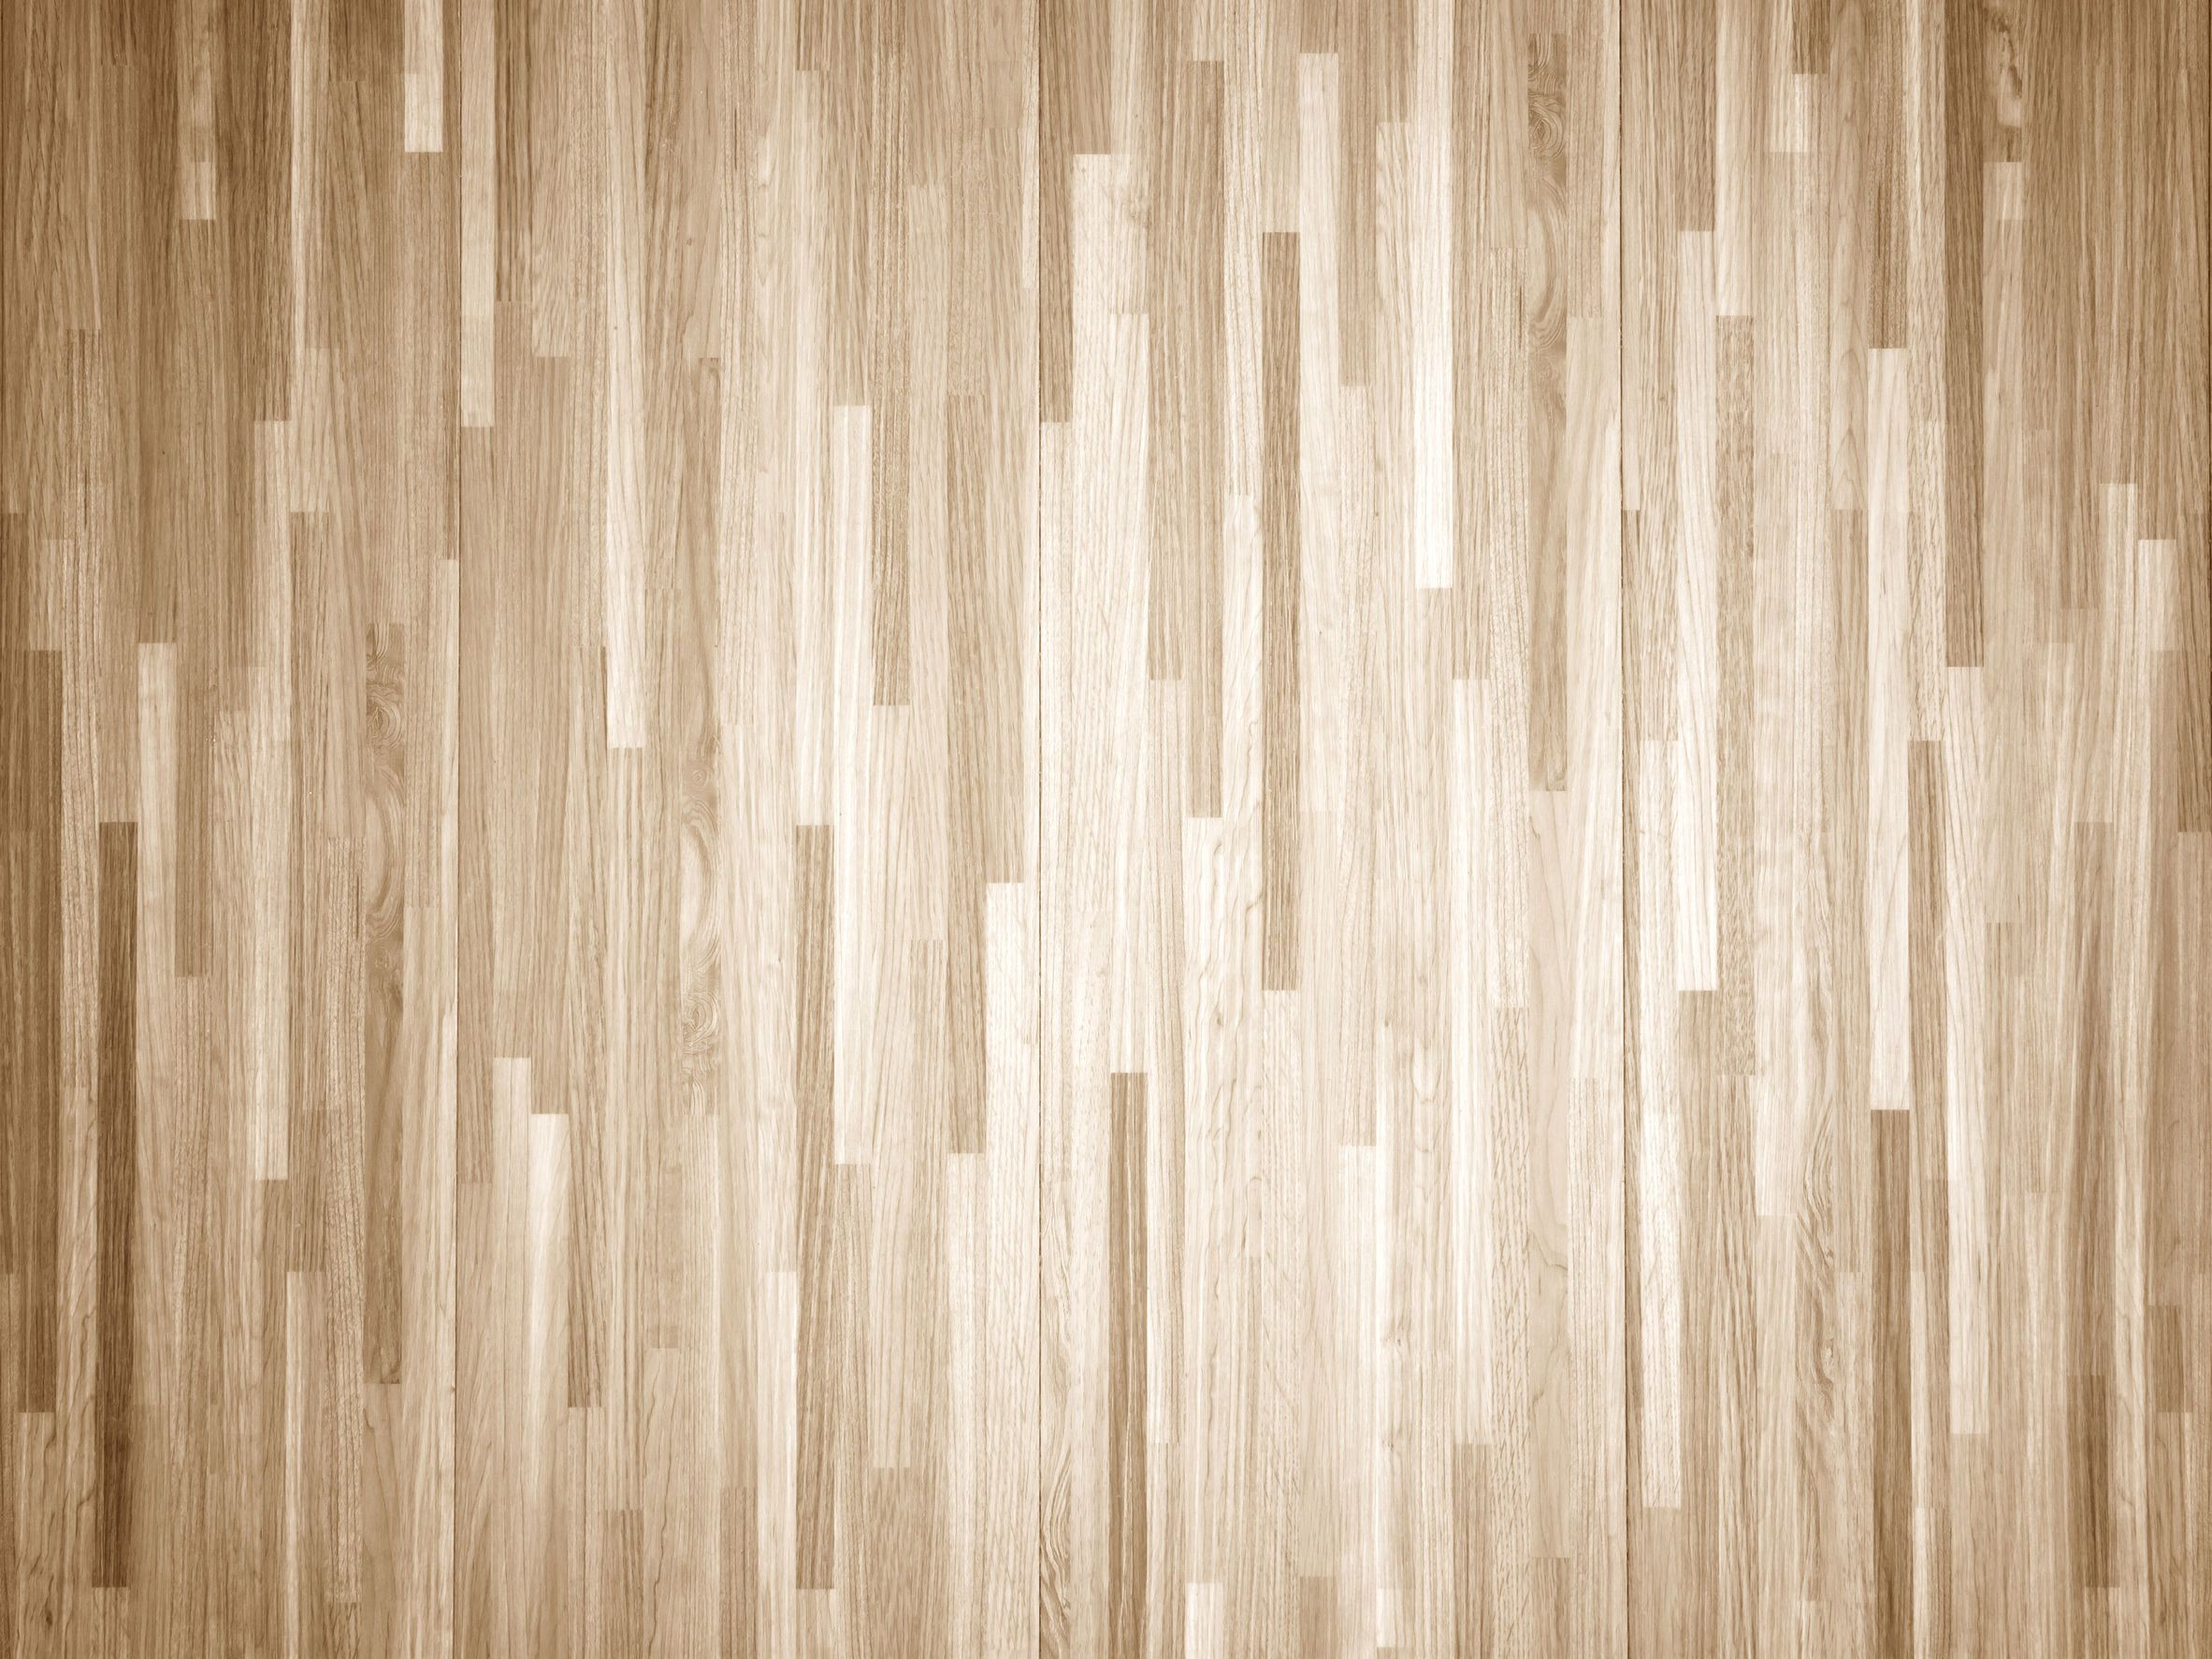 refinishing hardwood floors cost diy of how to chemically strip wood floors woodfloordoctor com with regard to you